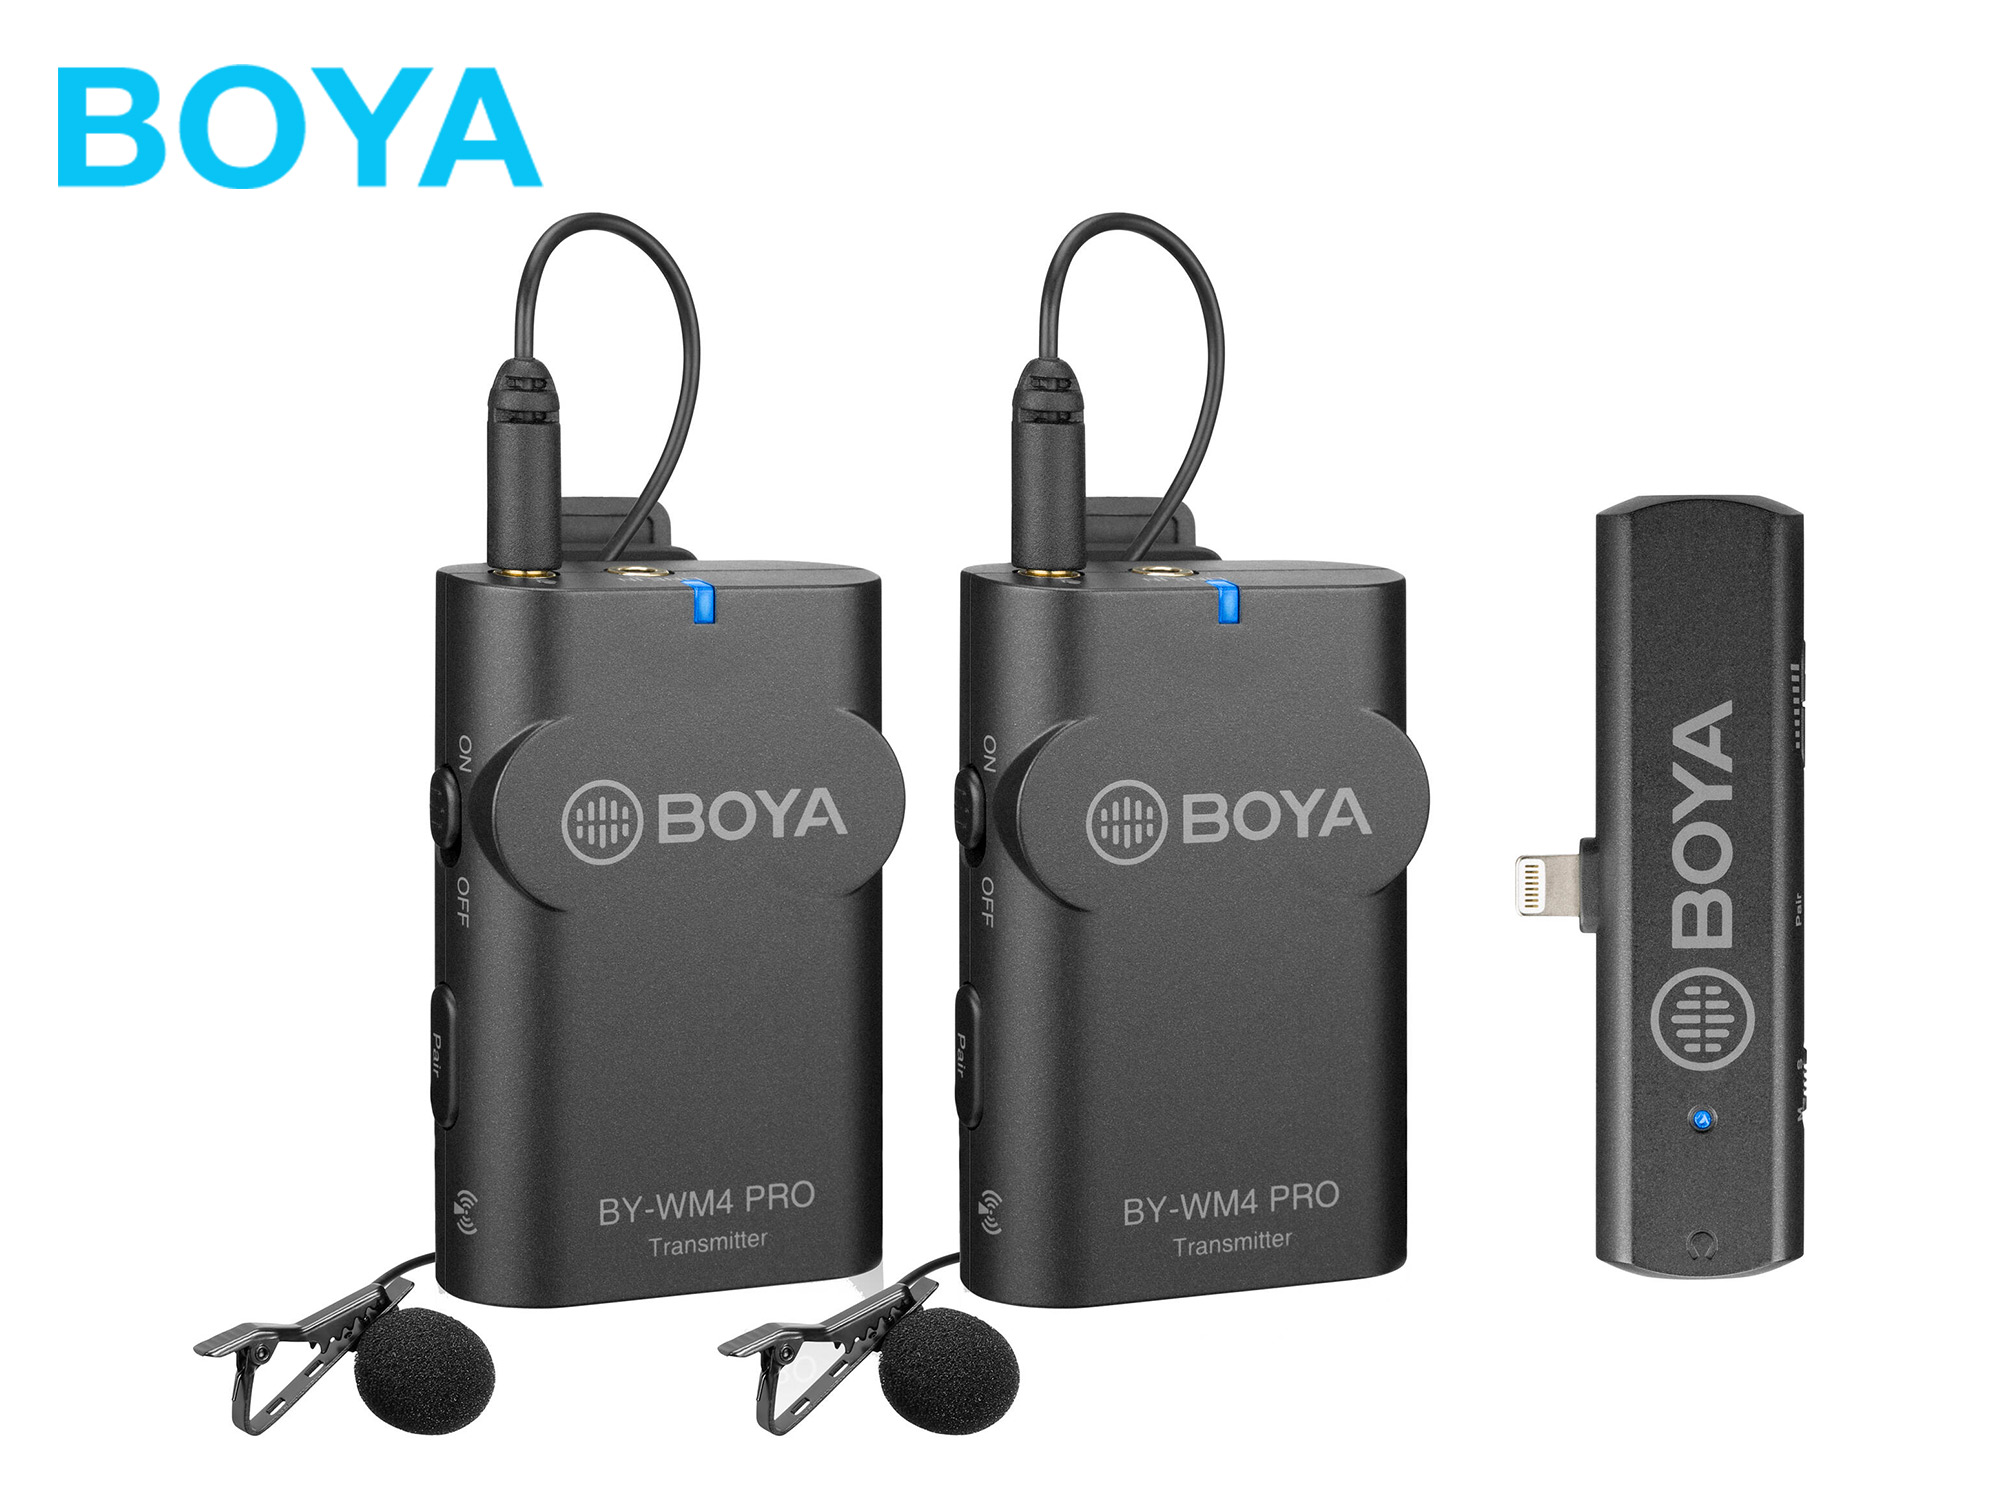 Boya BY-WM4 PRO K4 2.4 GHz Wireless Microphone System For iOS devices (2 Transmitters)